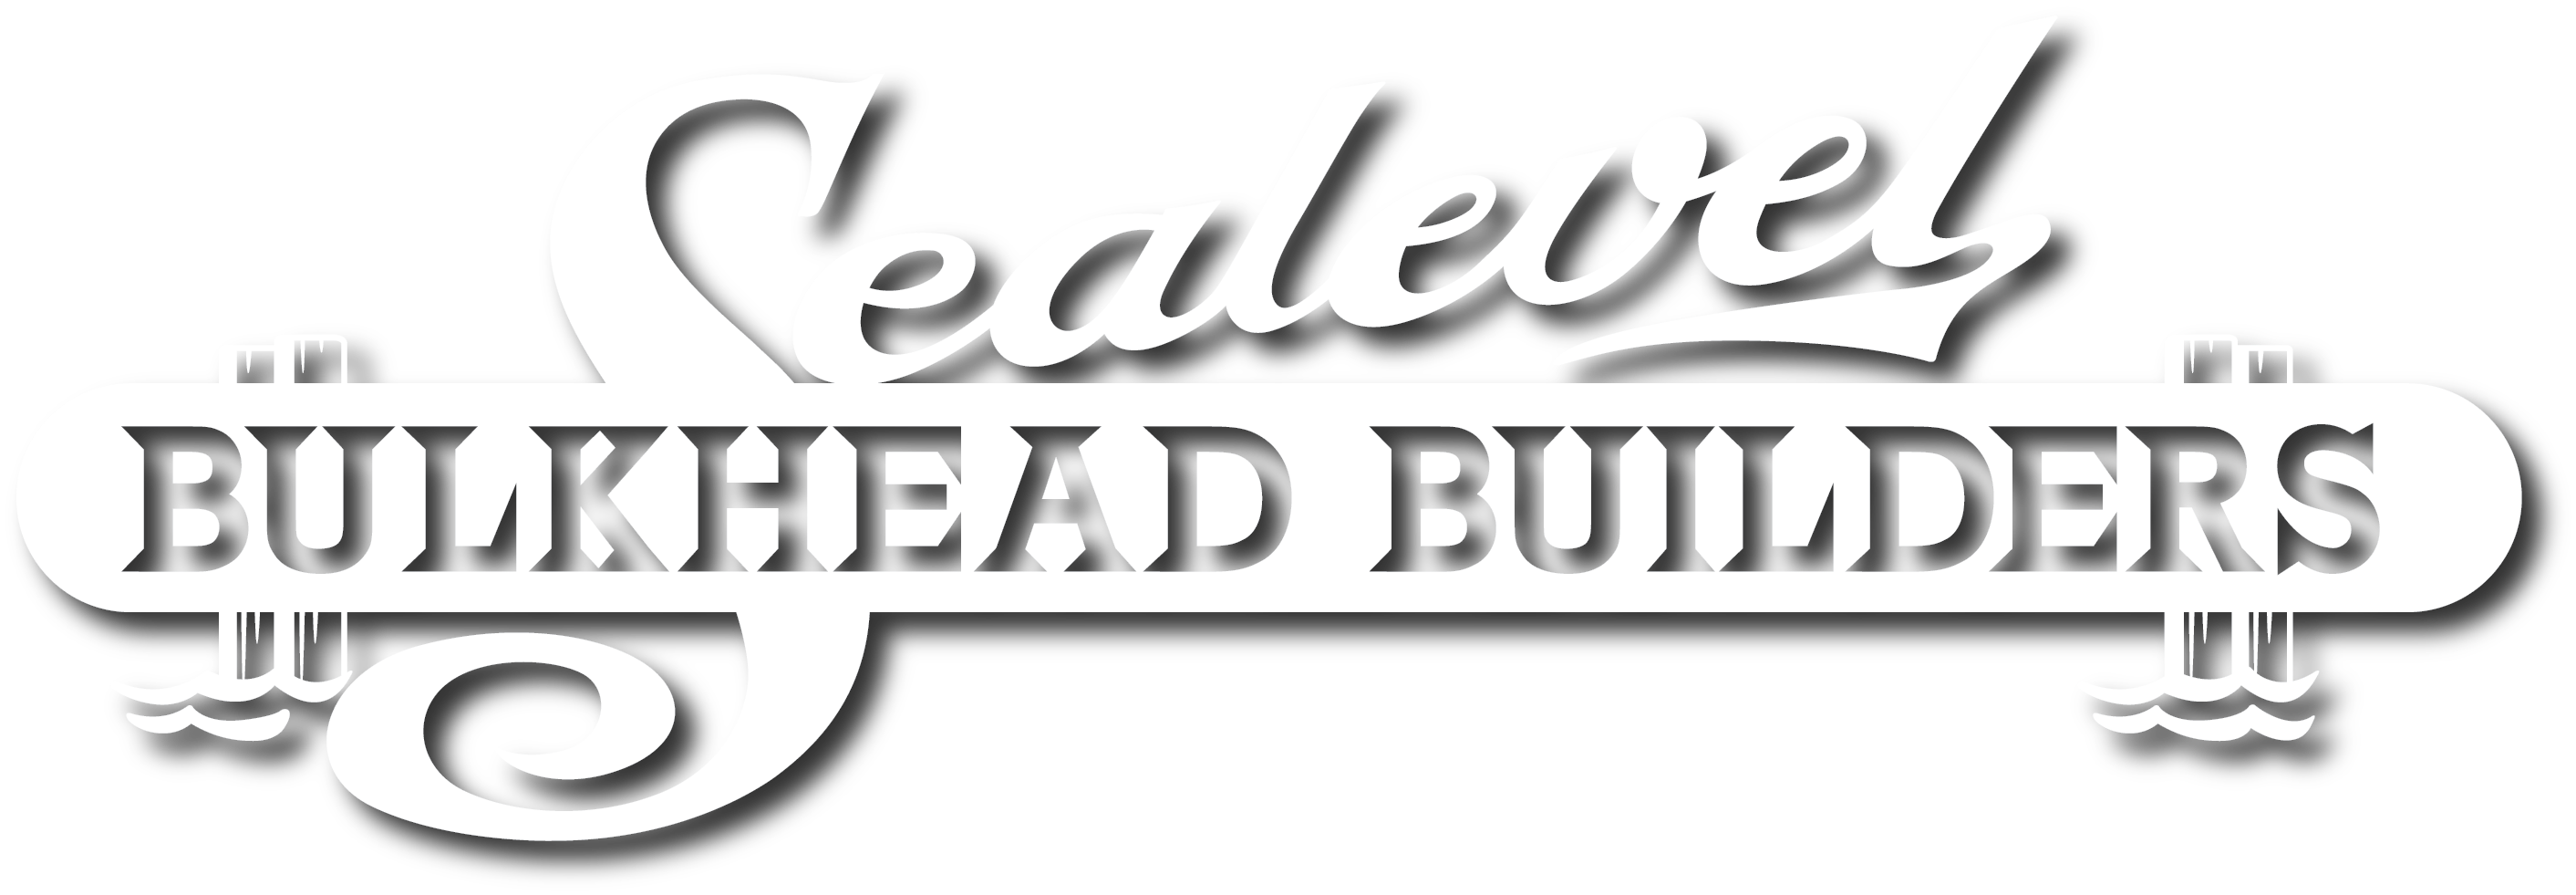 Sealevel Bulkhead Builders